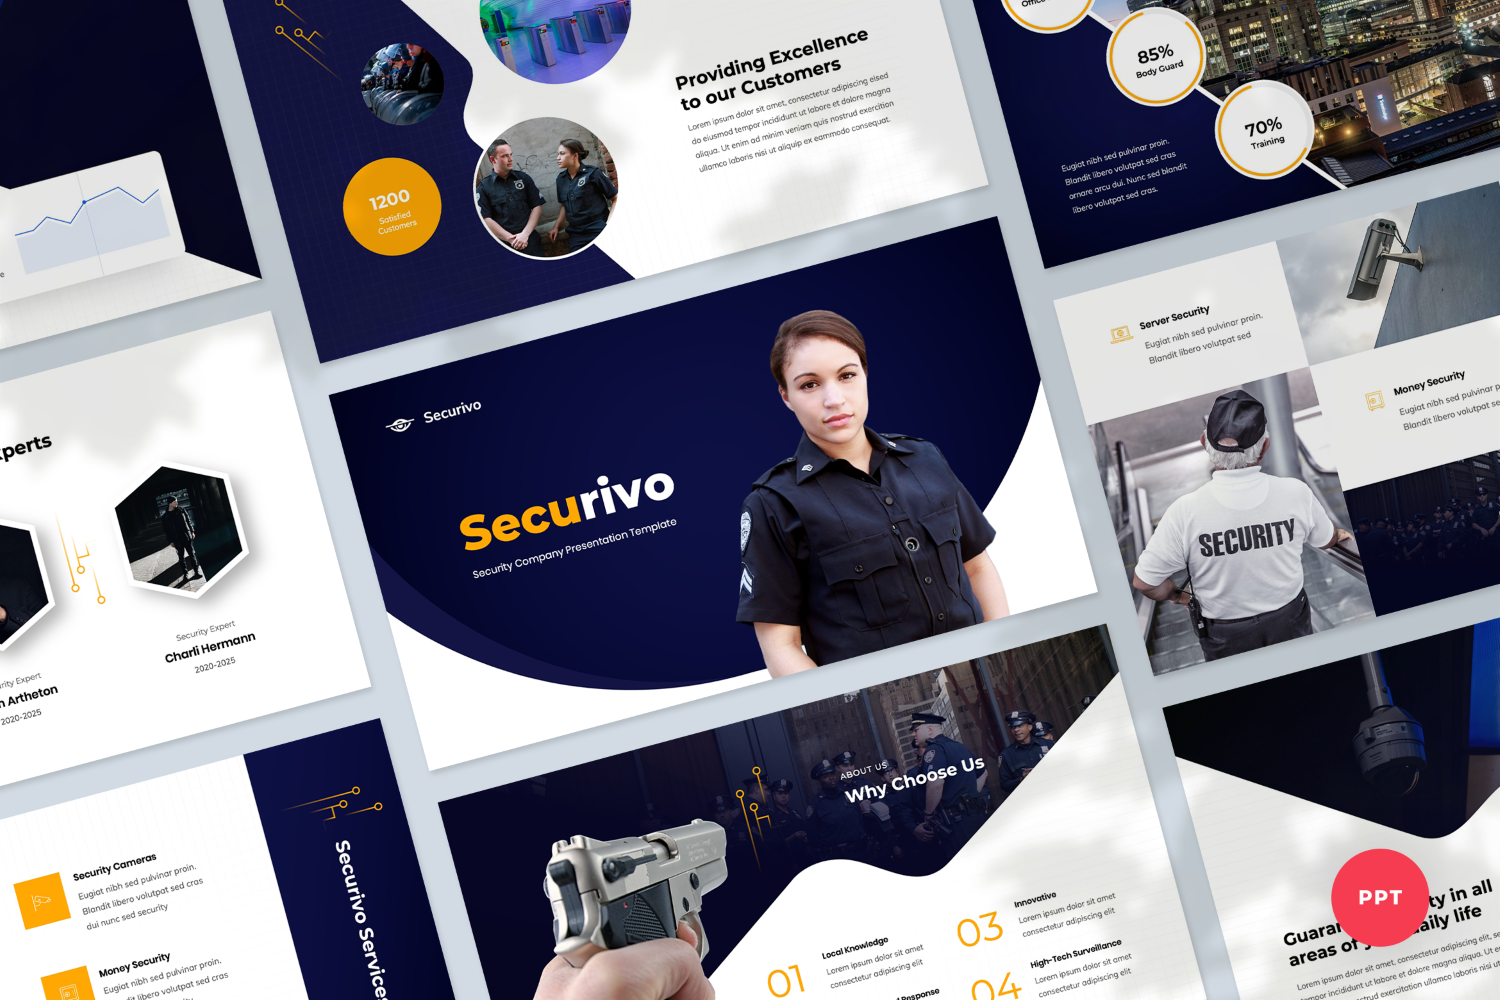 Security Company Presentation PowerPoint Template